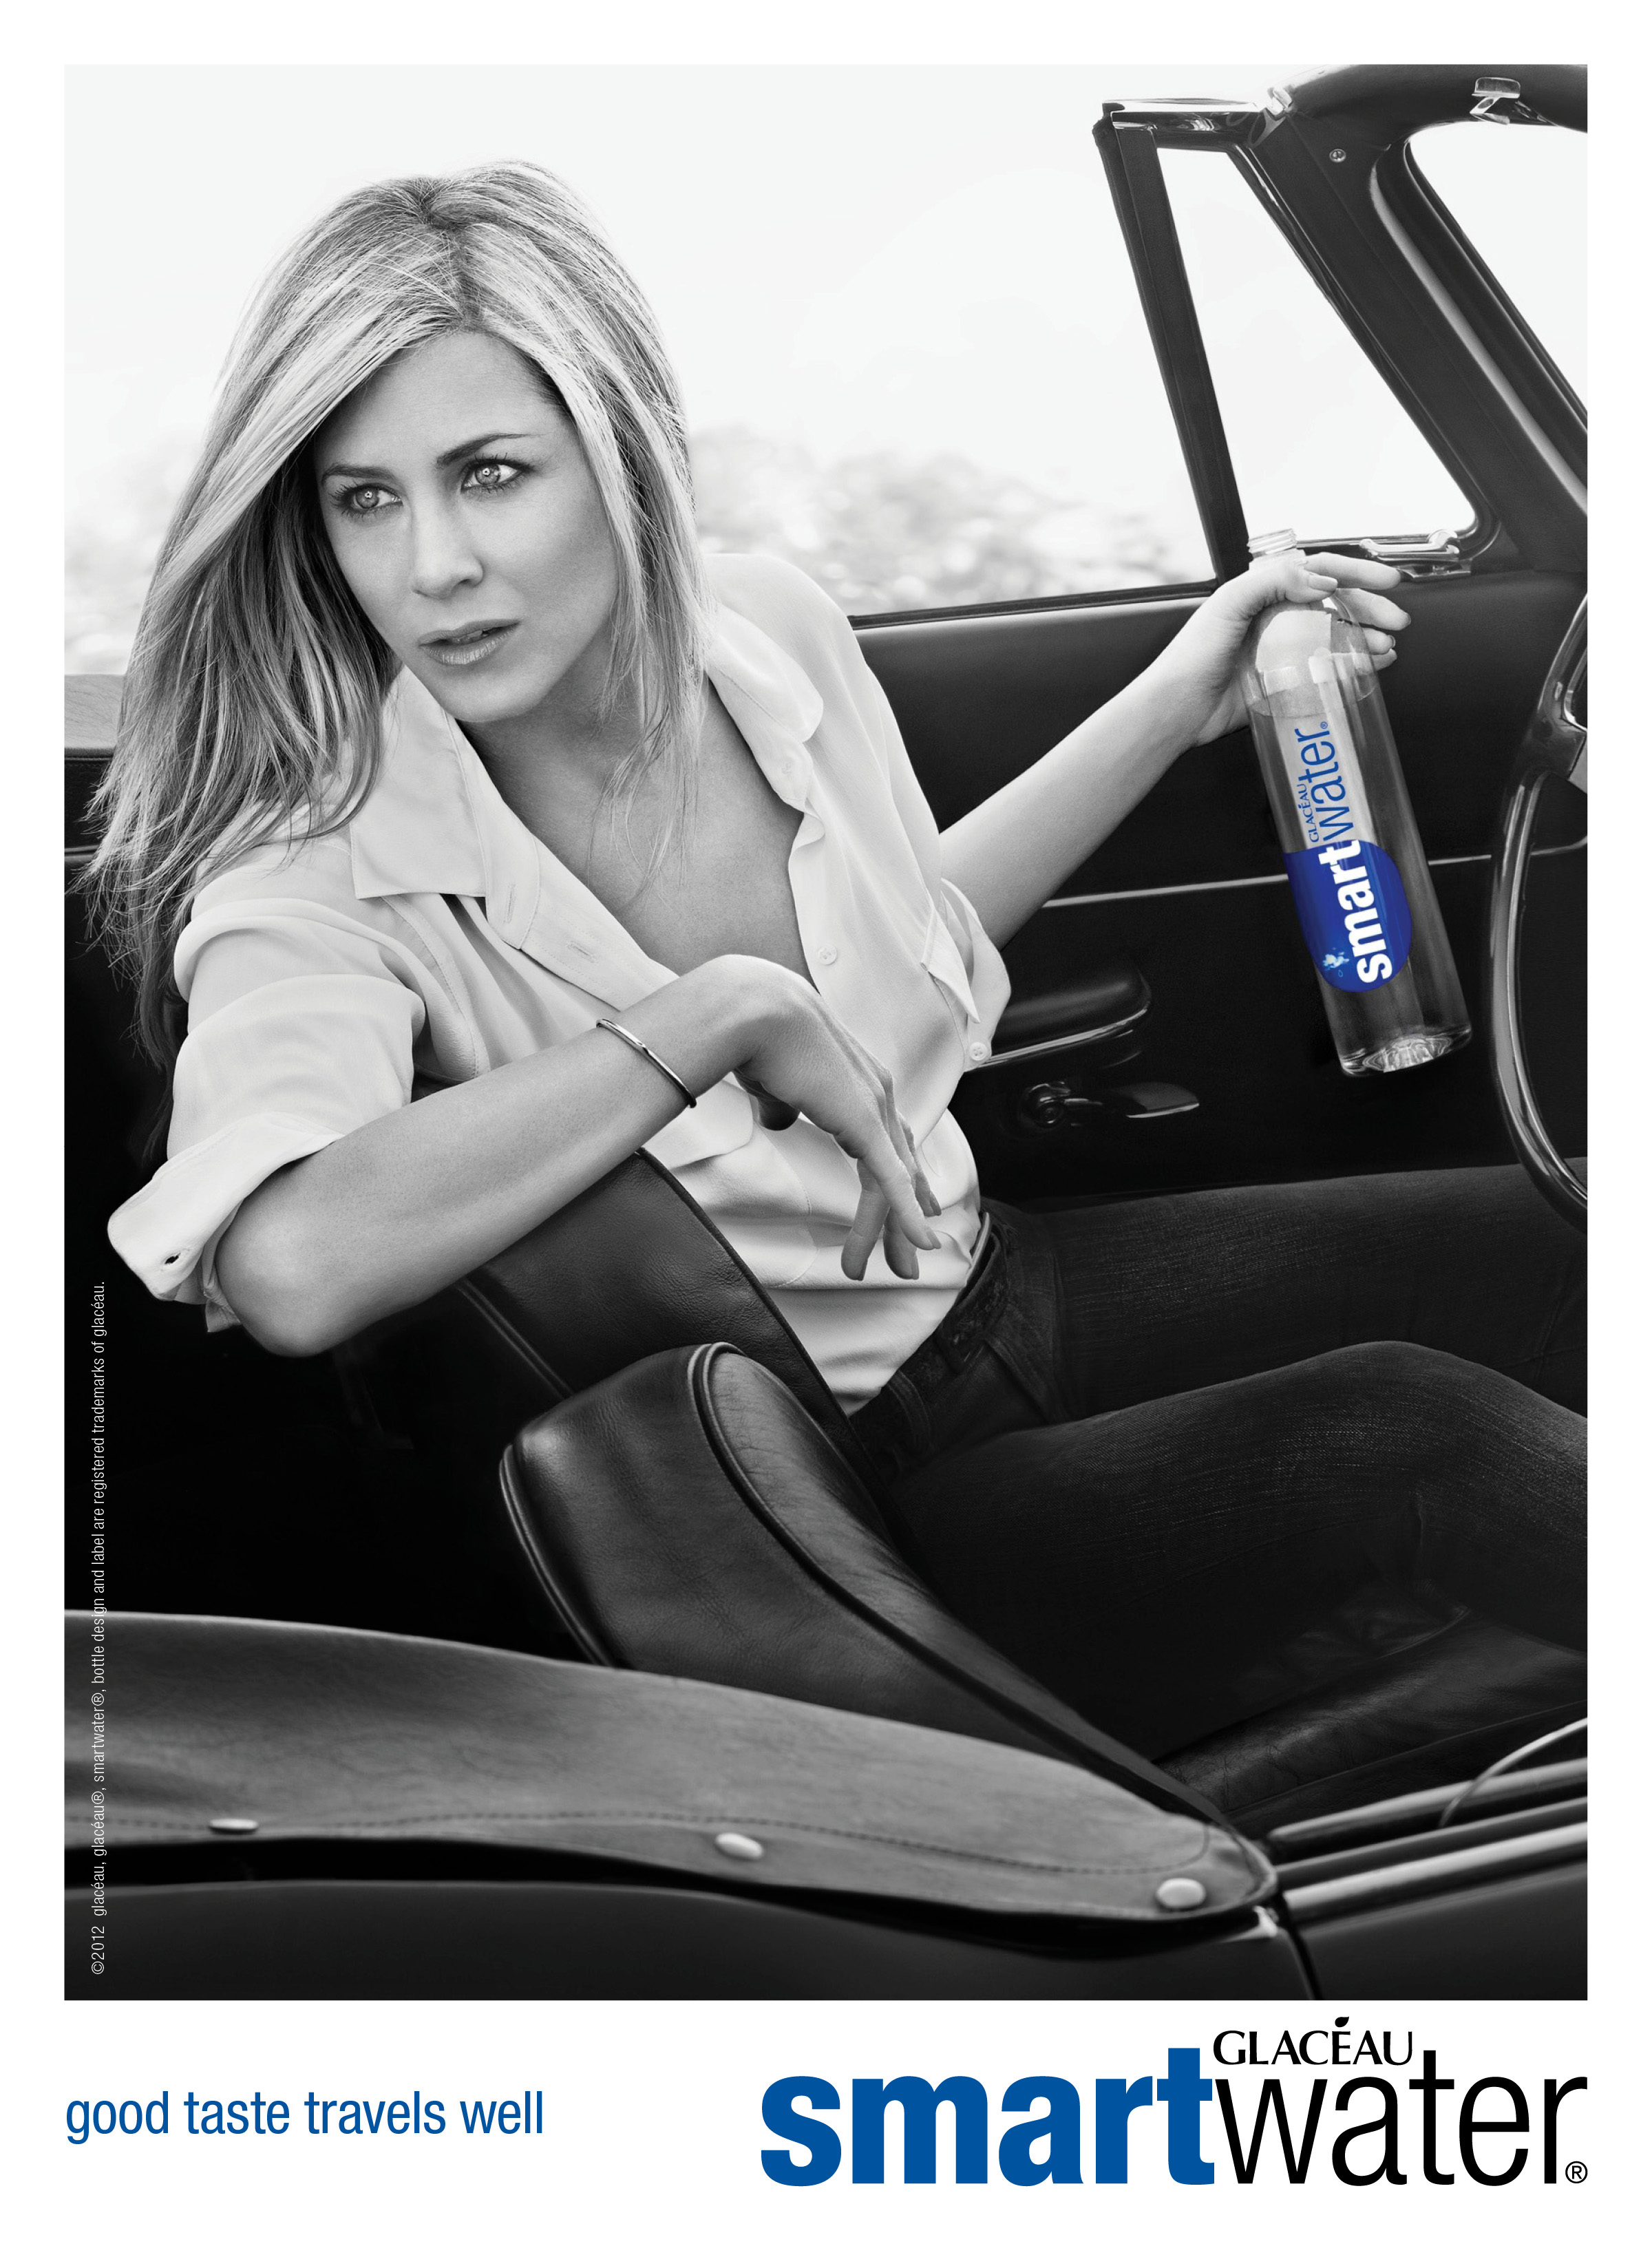 Jennifer Aniston's New smartwater Campaign Here First!